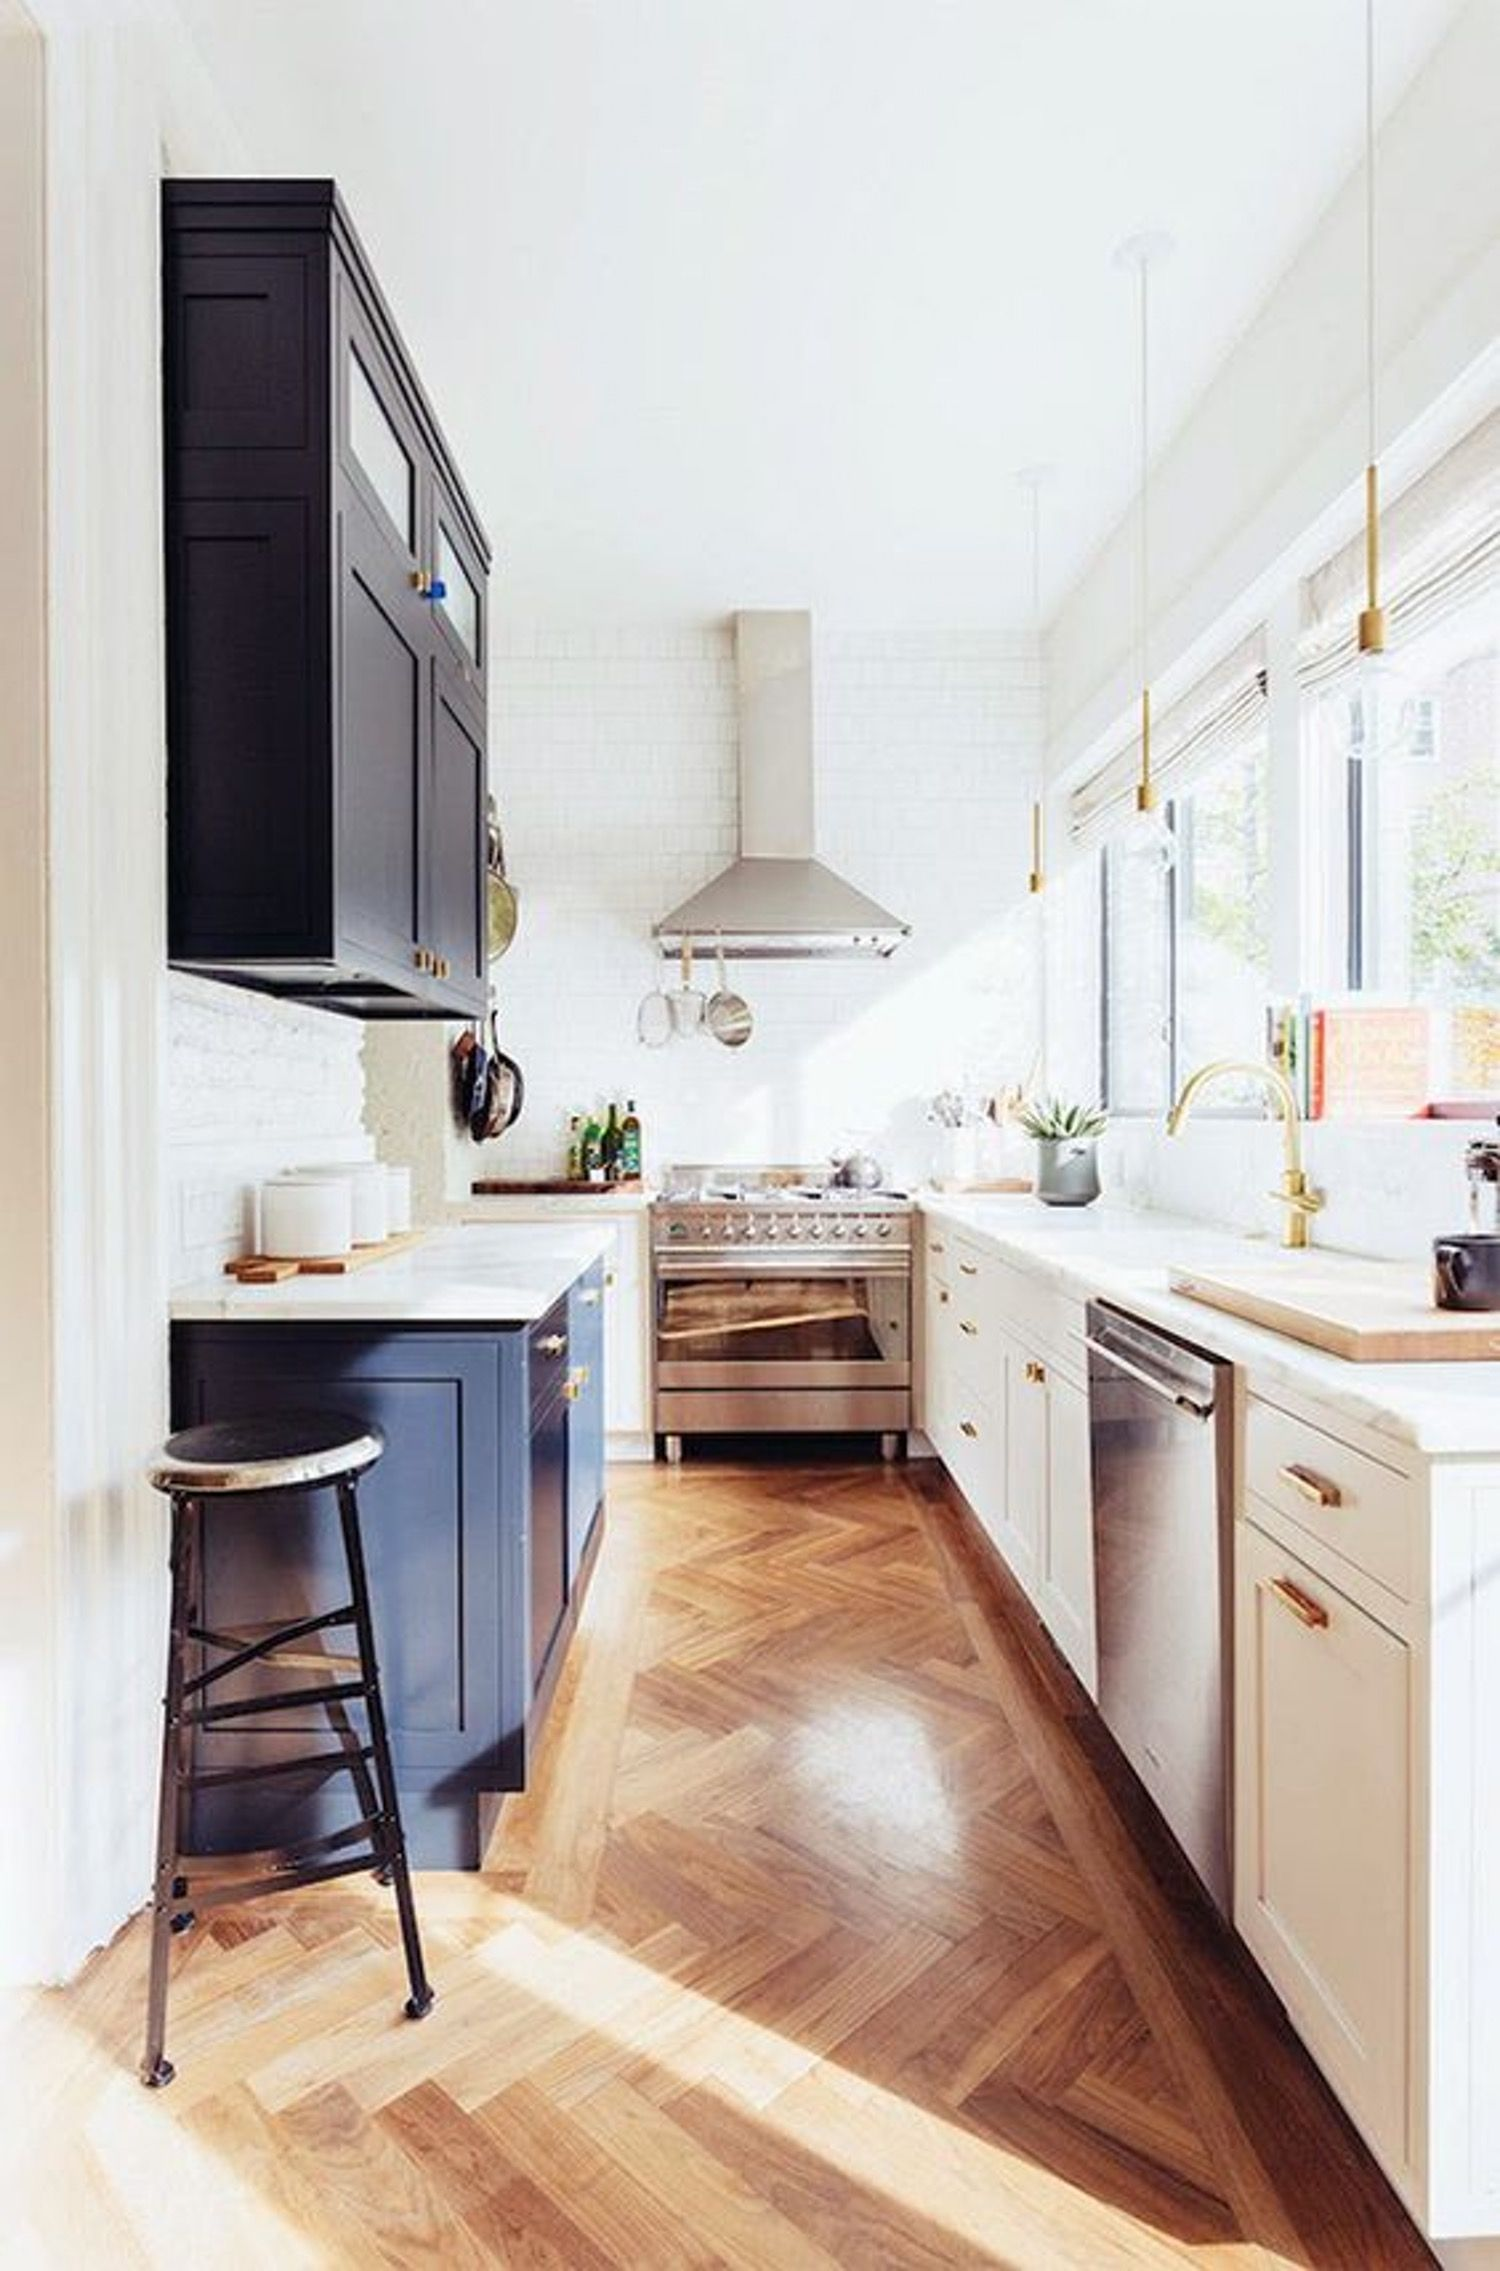 9 Smart Ways to Make the Most of a Small Galley Kitchen   Pinterest ...